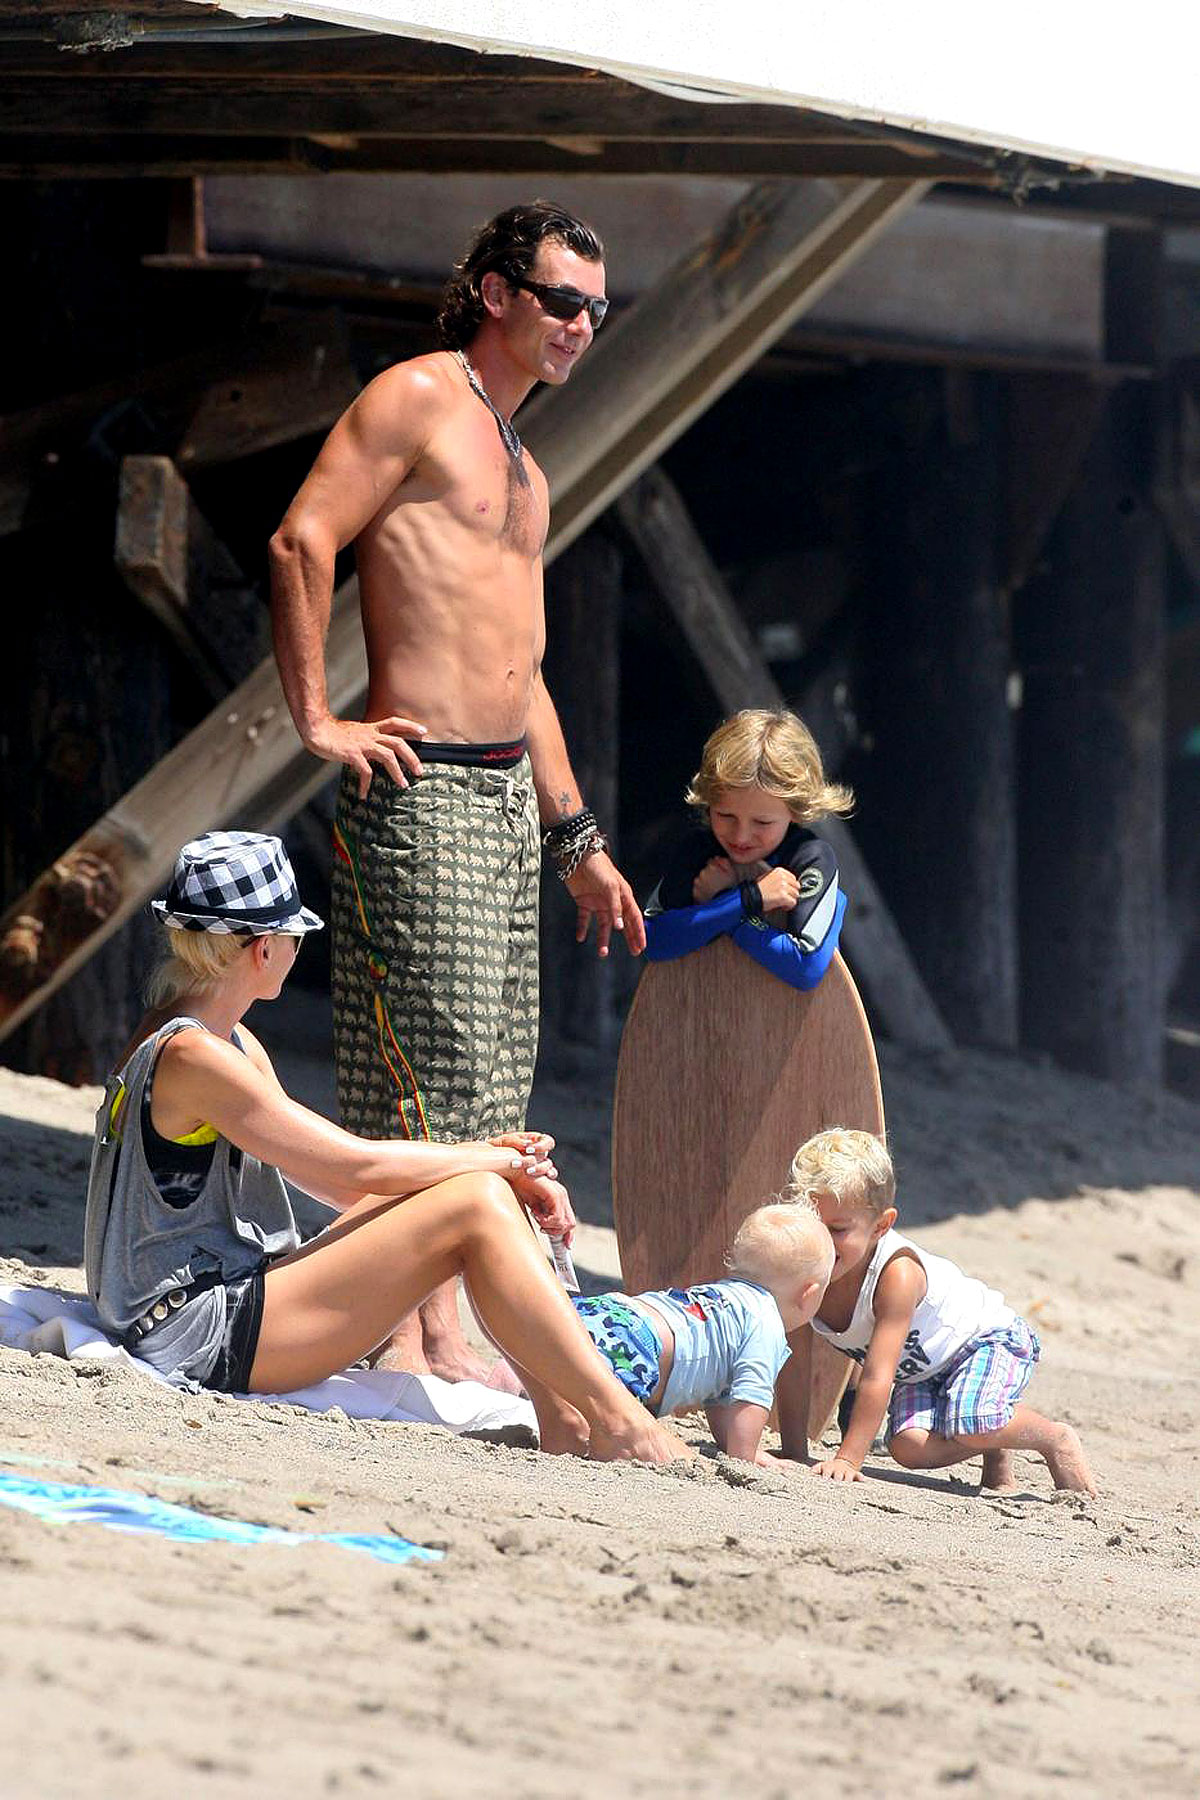 PHOTO GALLERY: The Stefani-Rossdale Family at the Beach